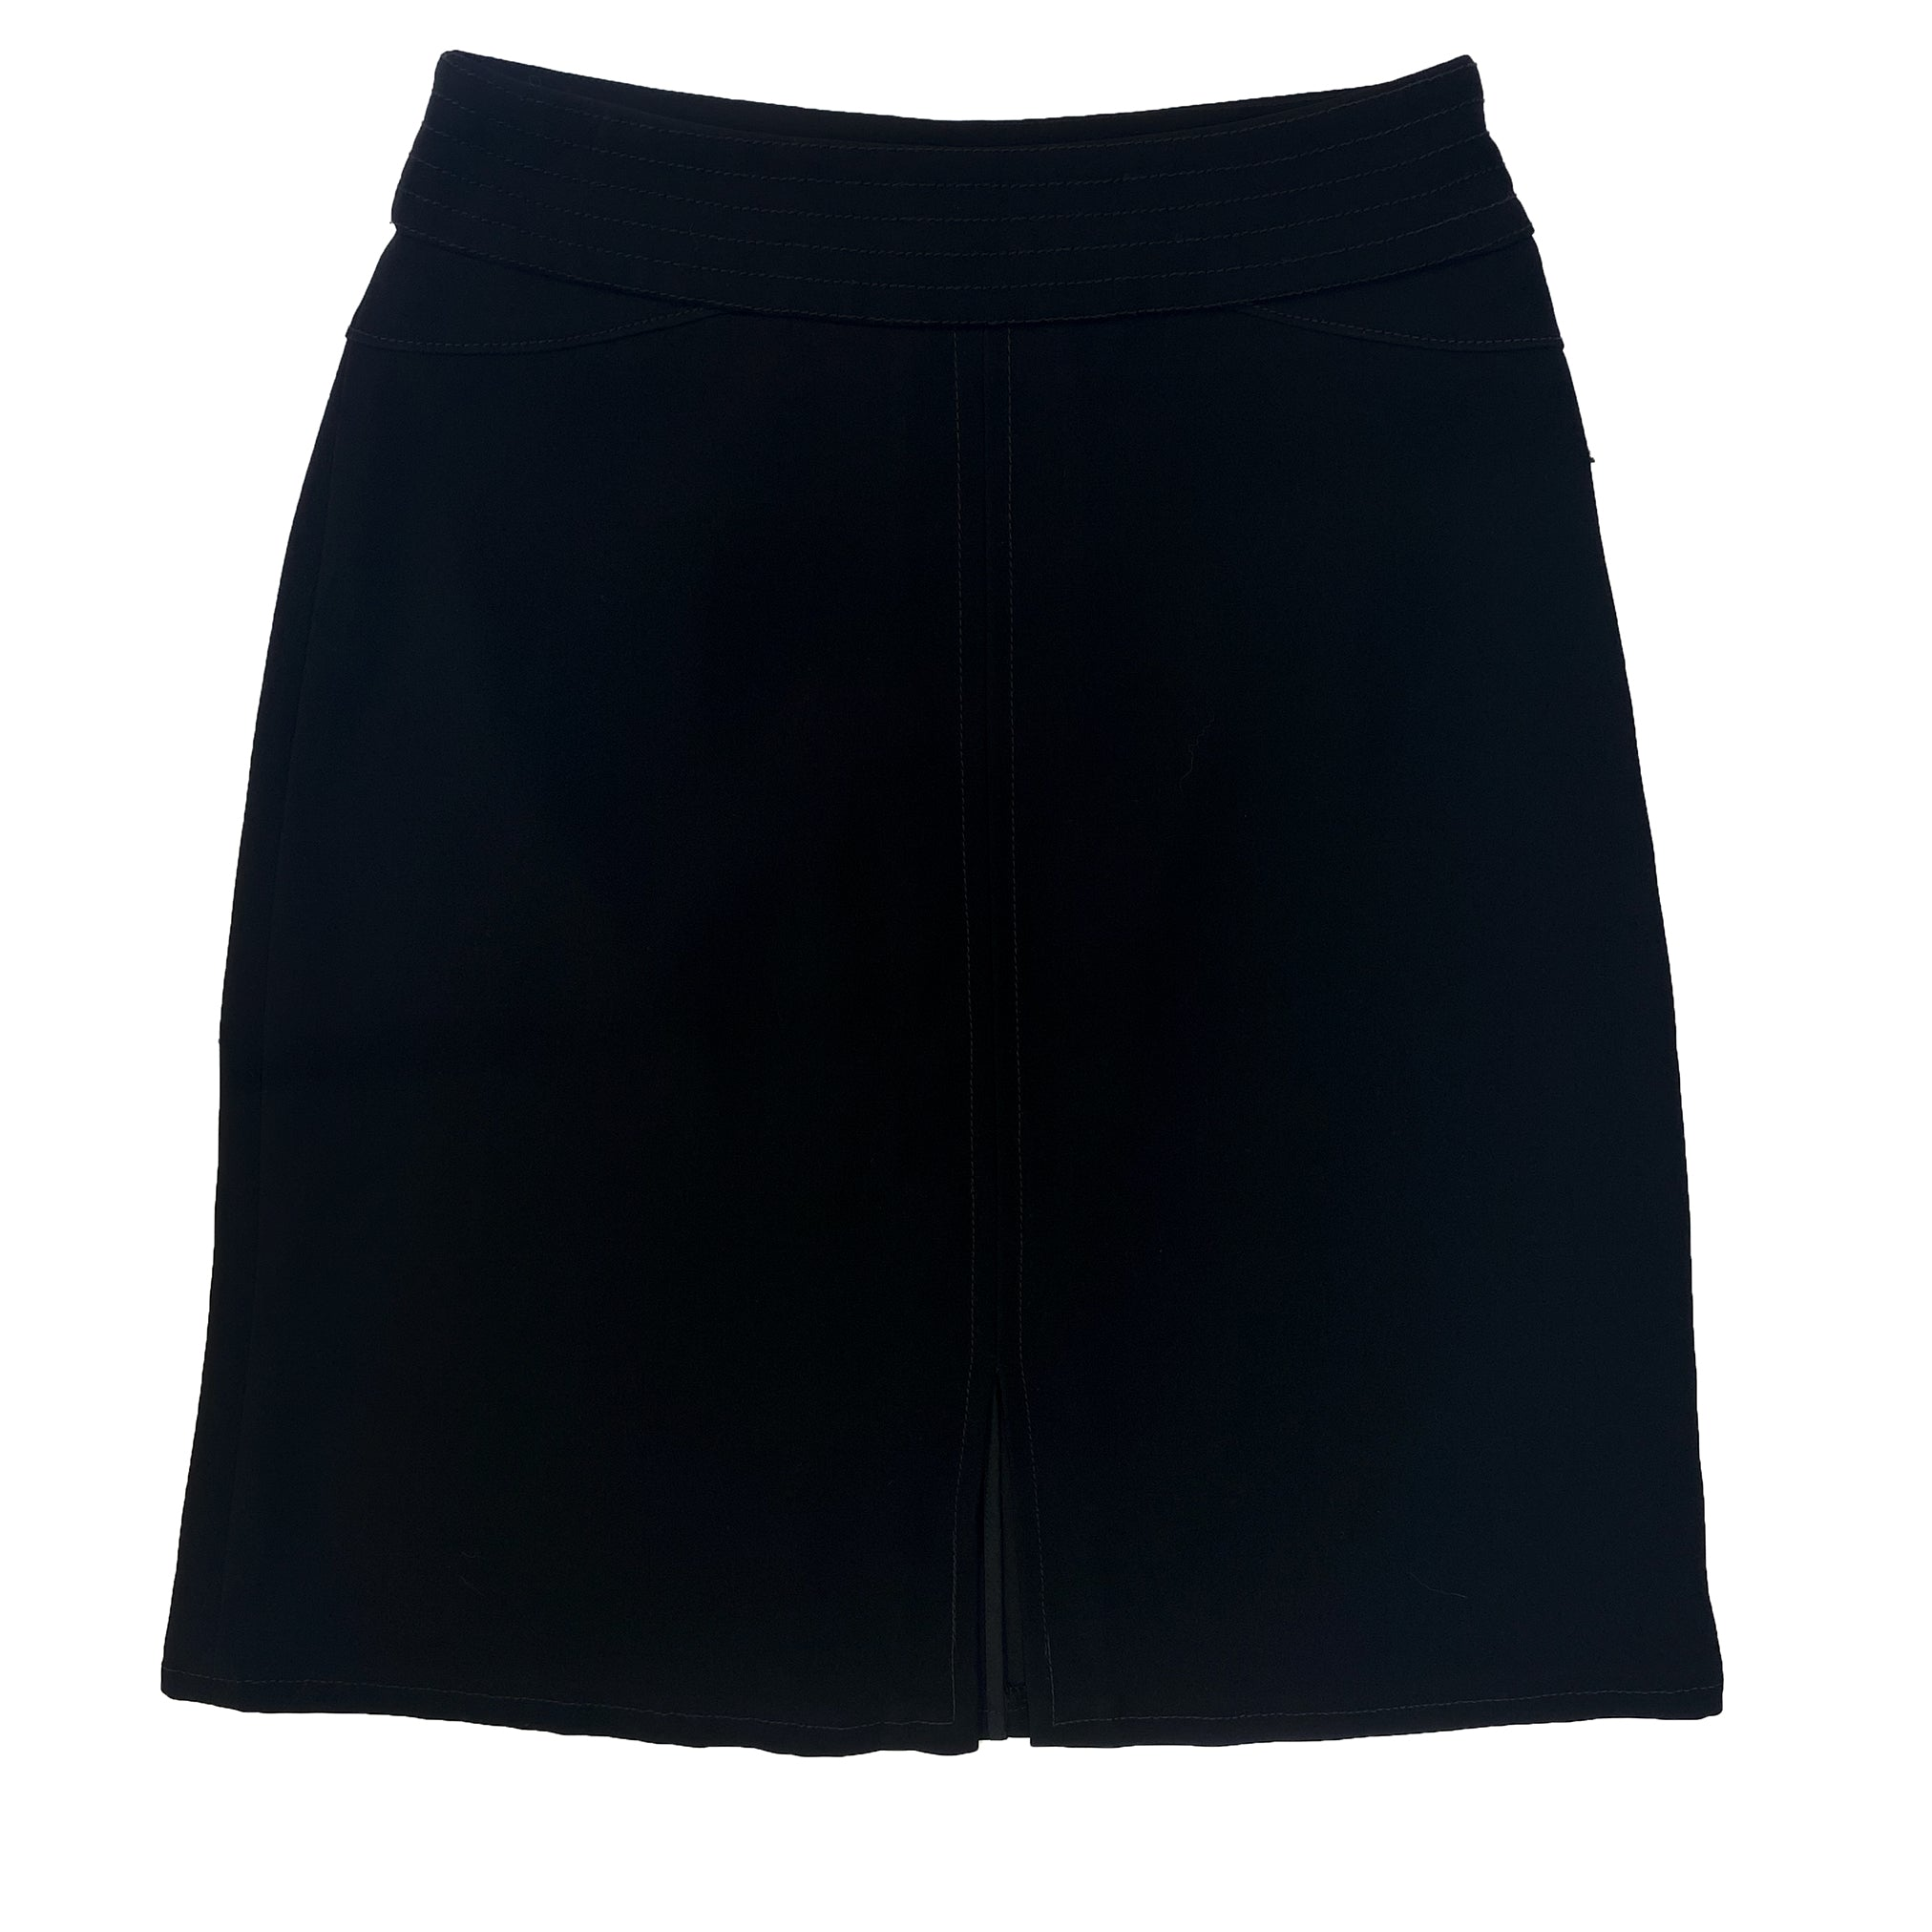 Louis Vuitton Black A-Line Skirt